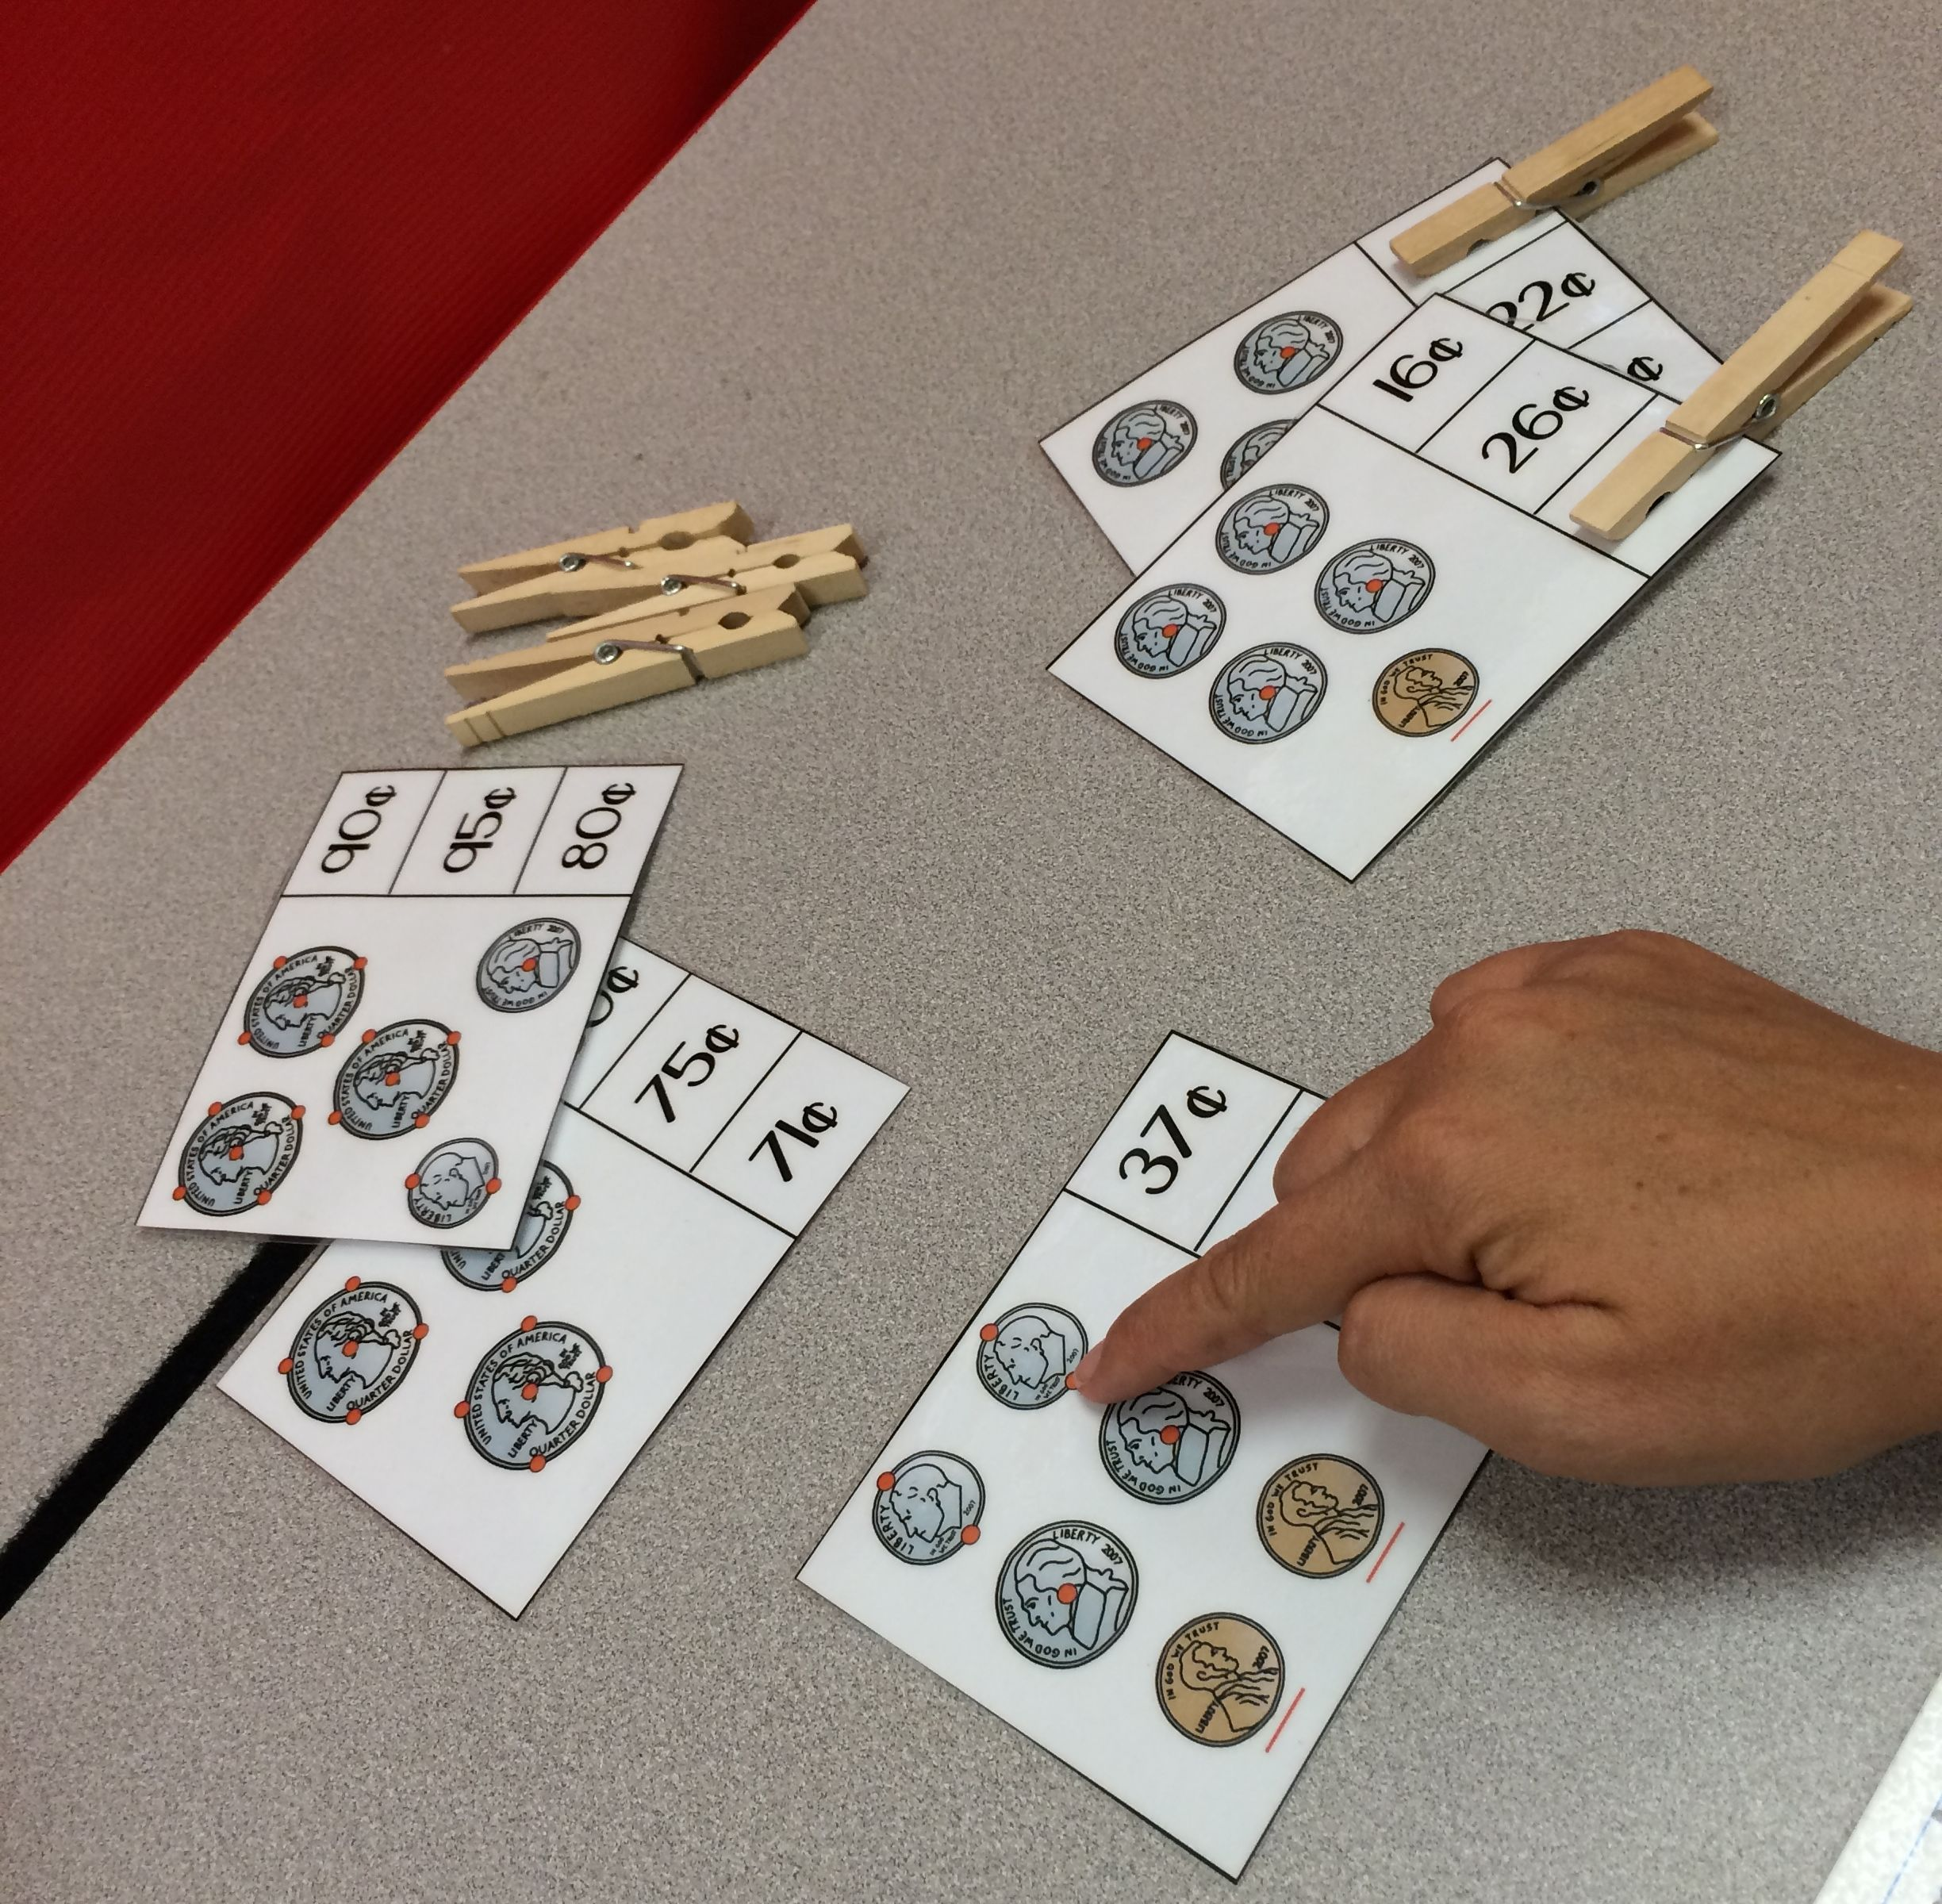 Great Practice Counting Money With Touch Points And Getting Fine Motor Skills Work In